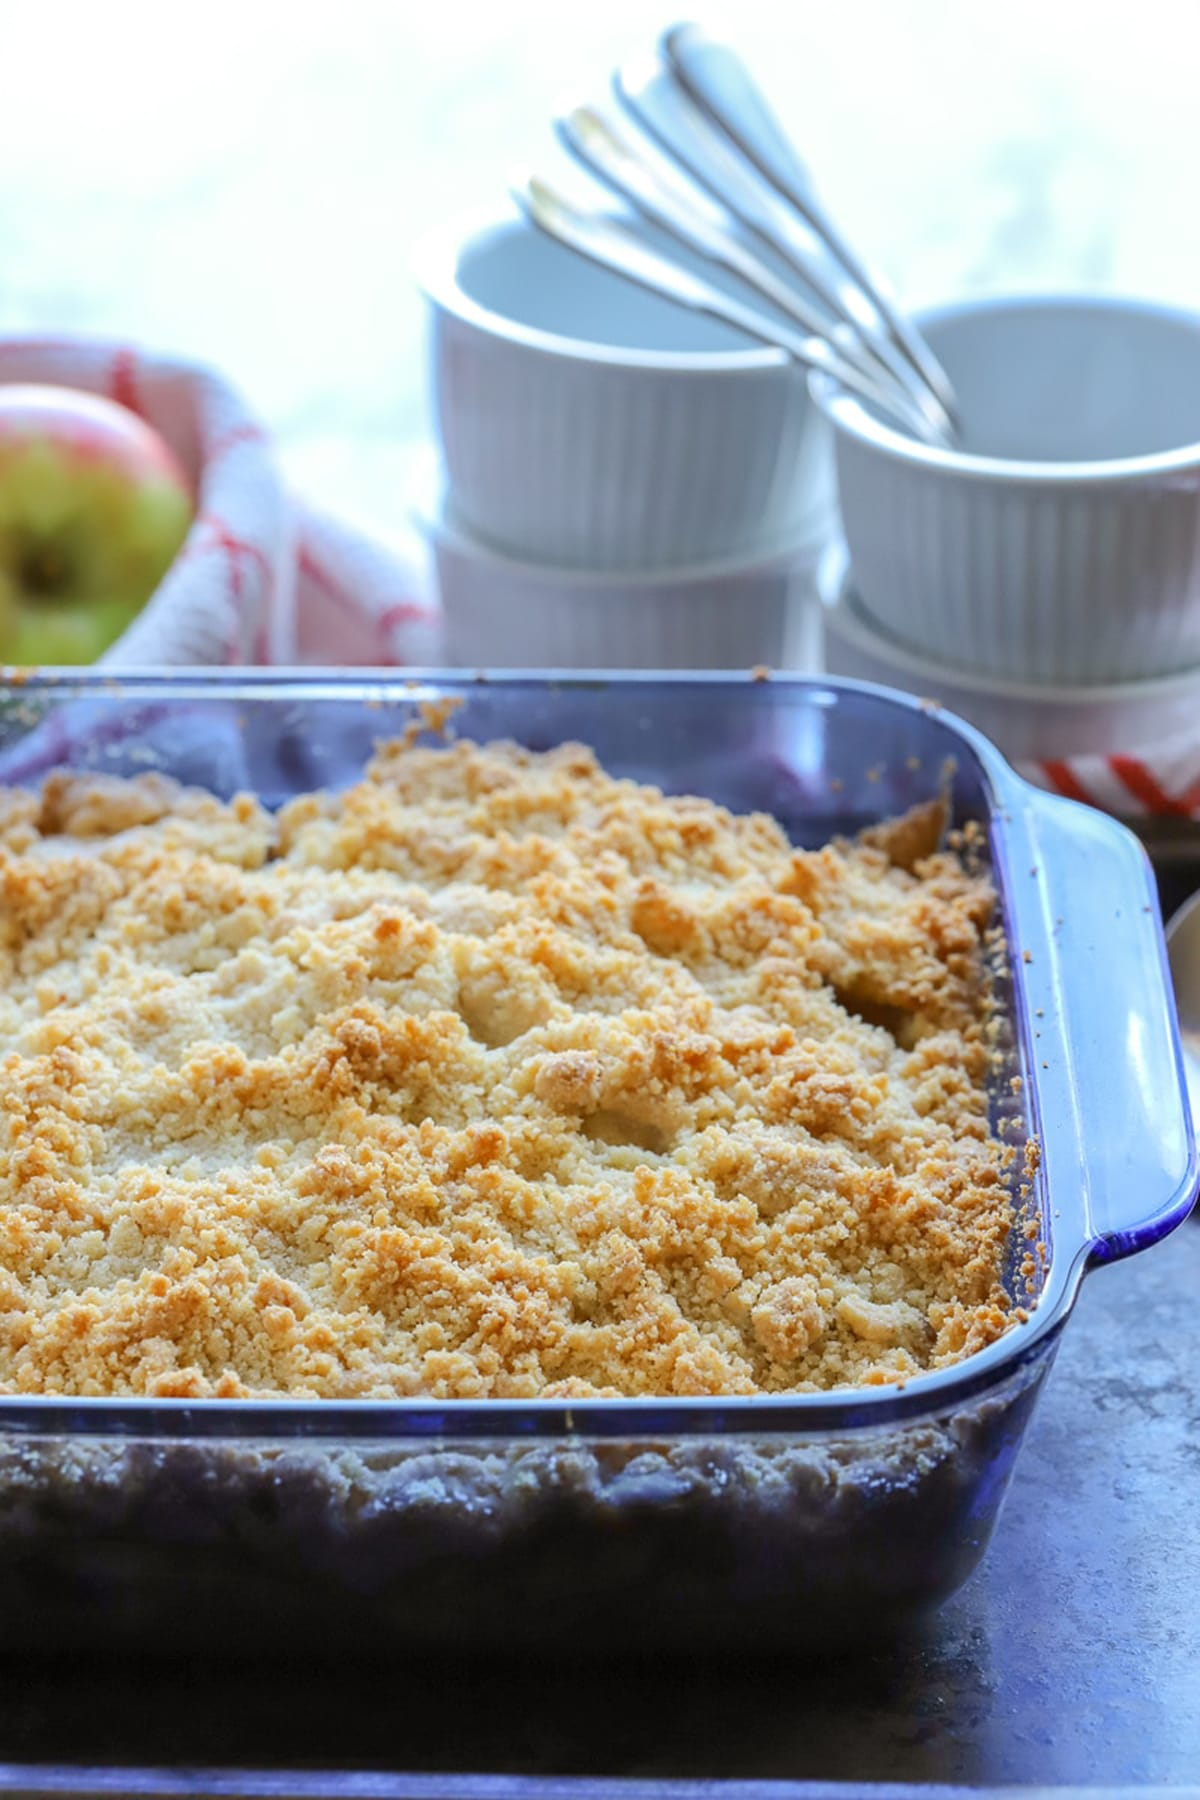 Pyrex dish containing a cooked Gluten Free Apple Crumble Fresh from the Oven, bowls and spoons on table.